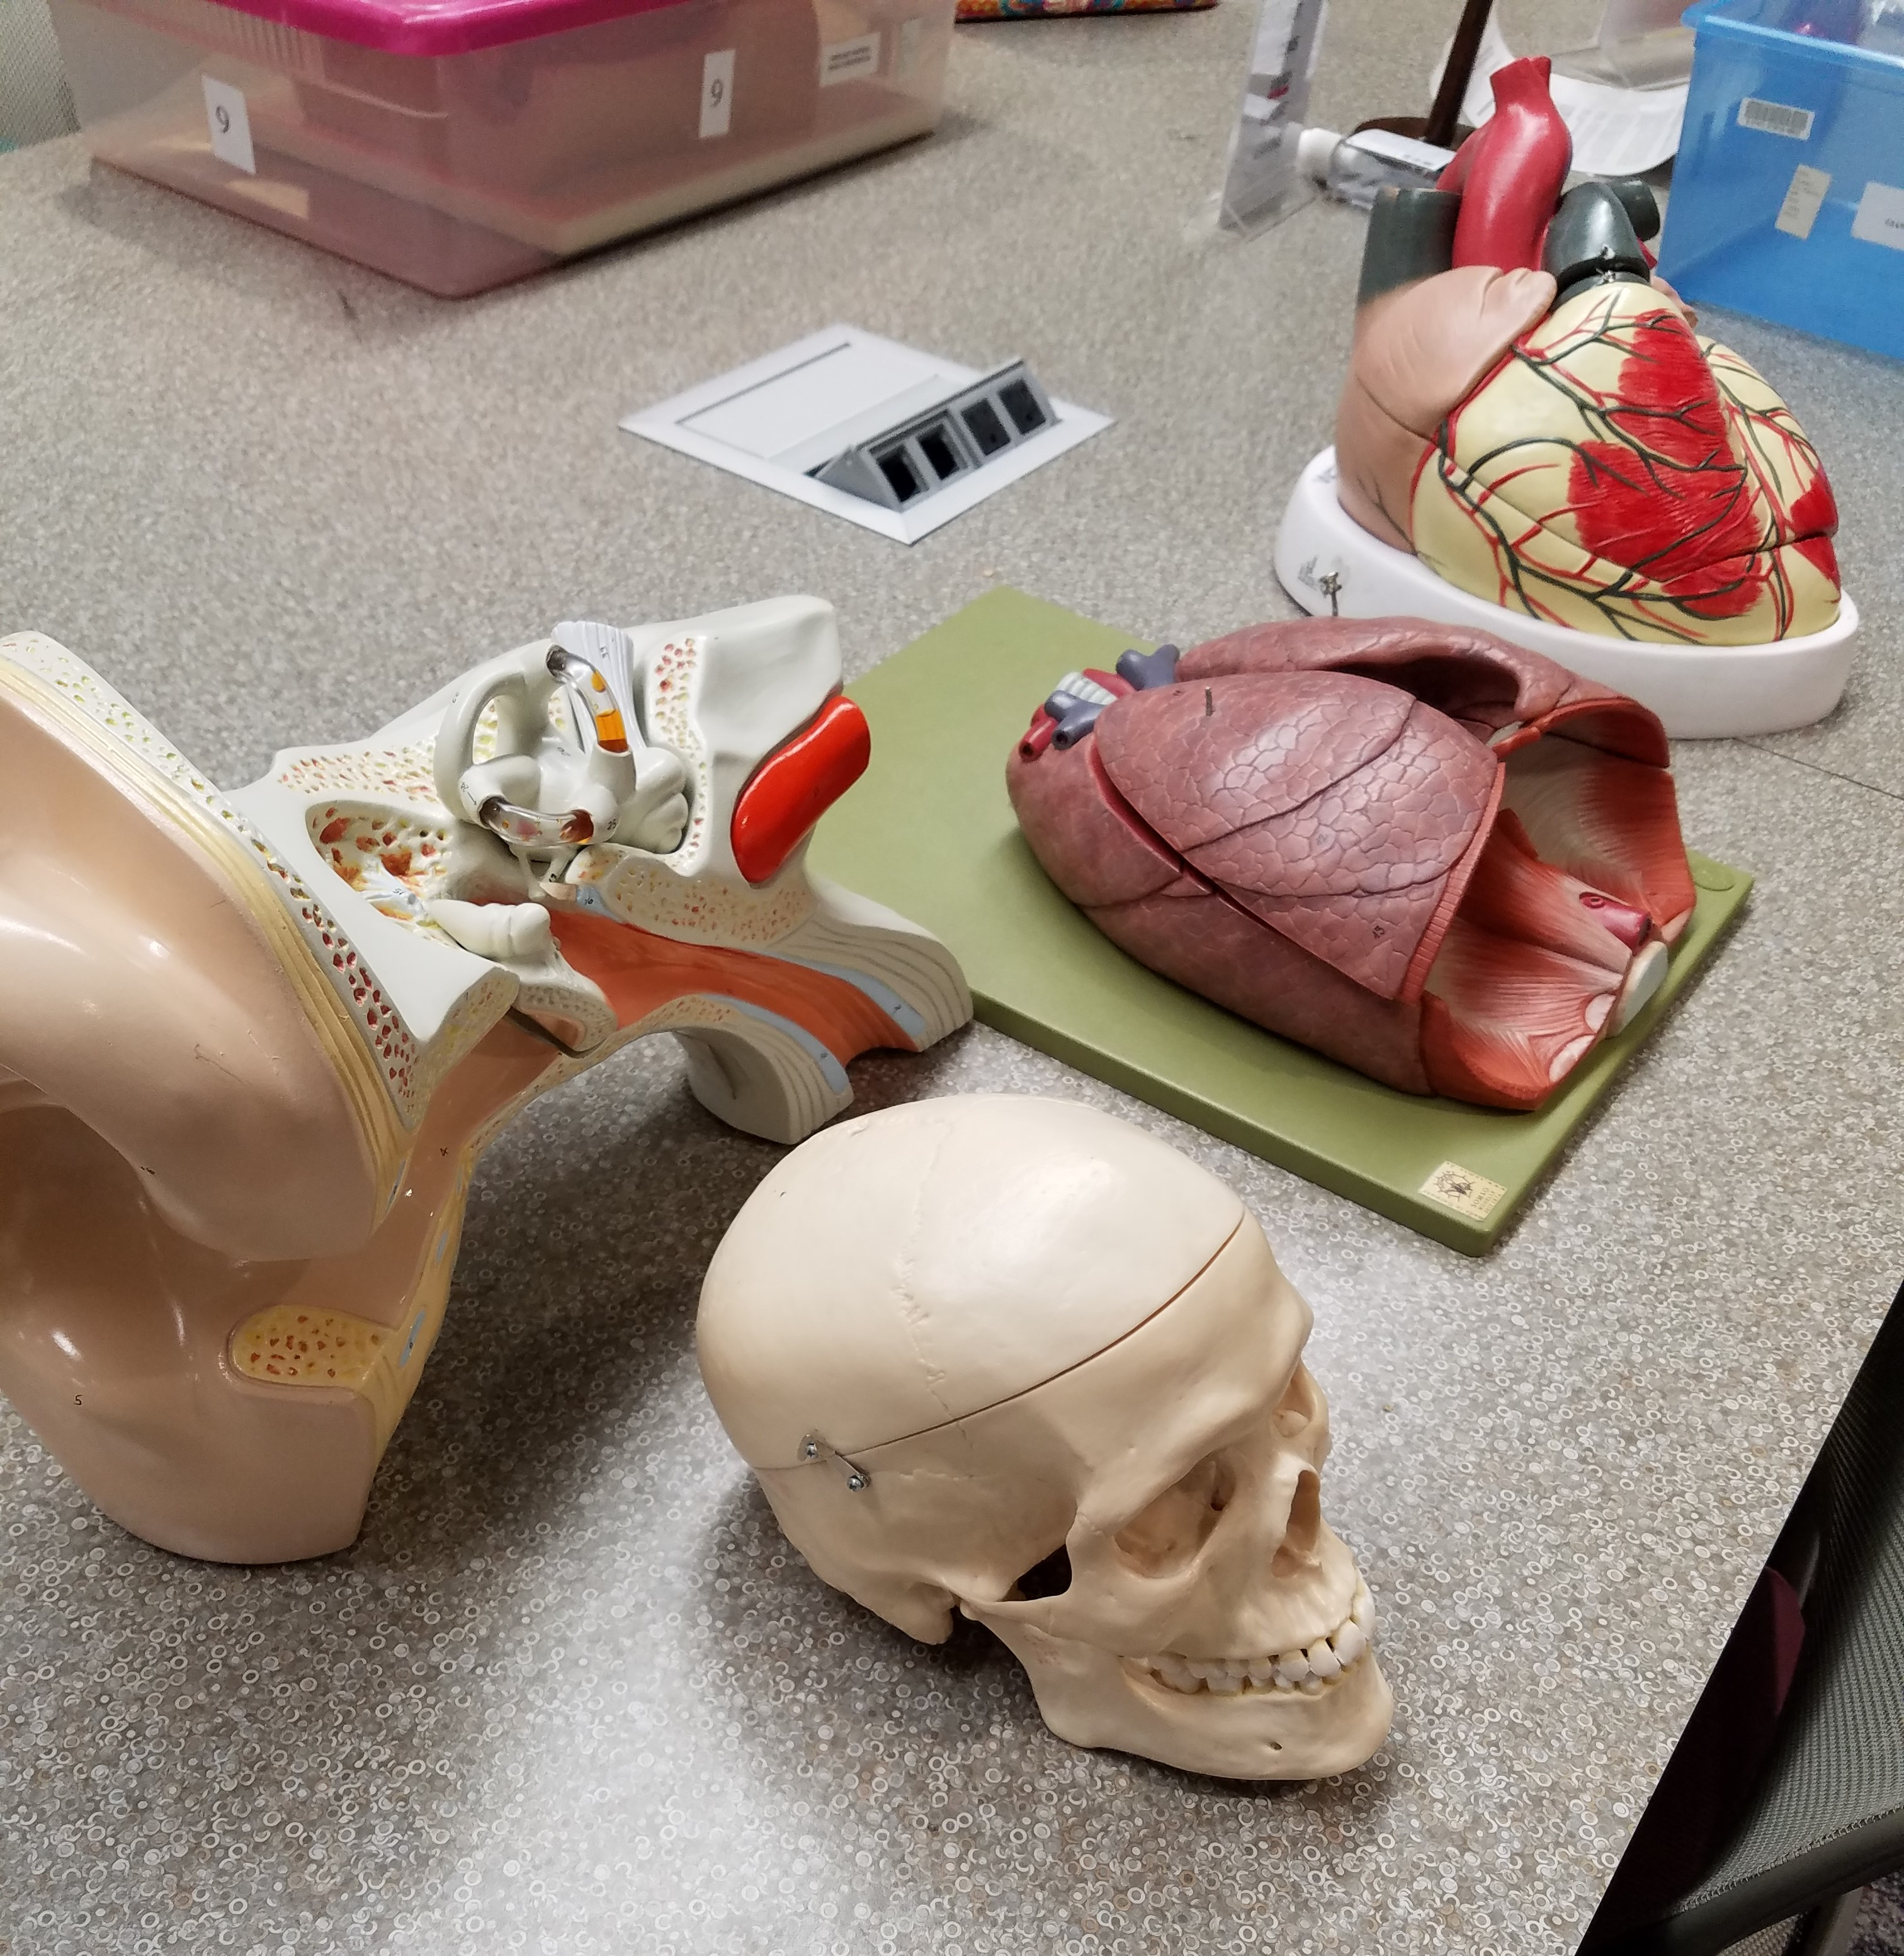 Anatomy room parts available